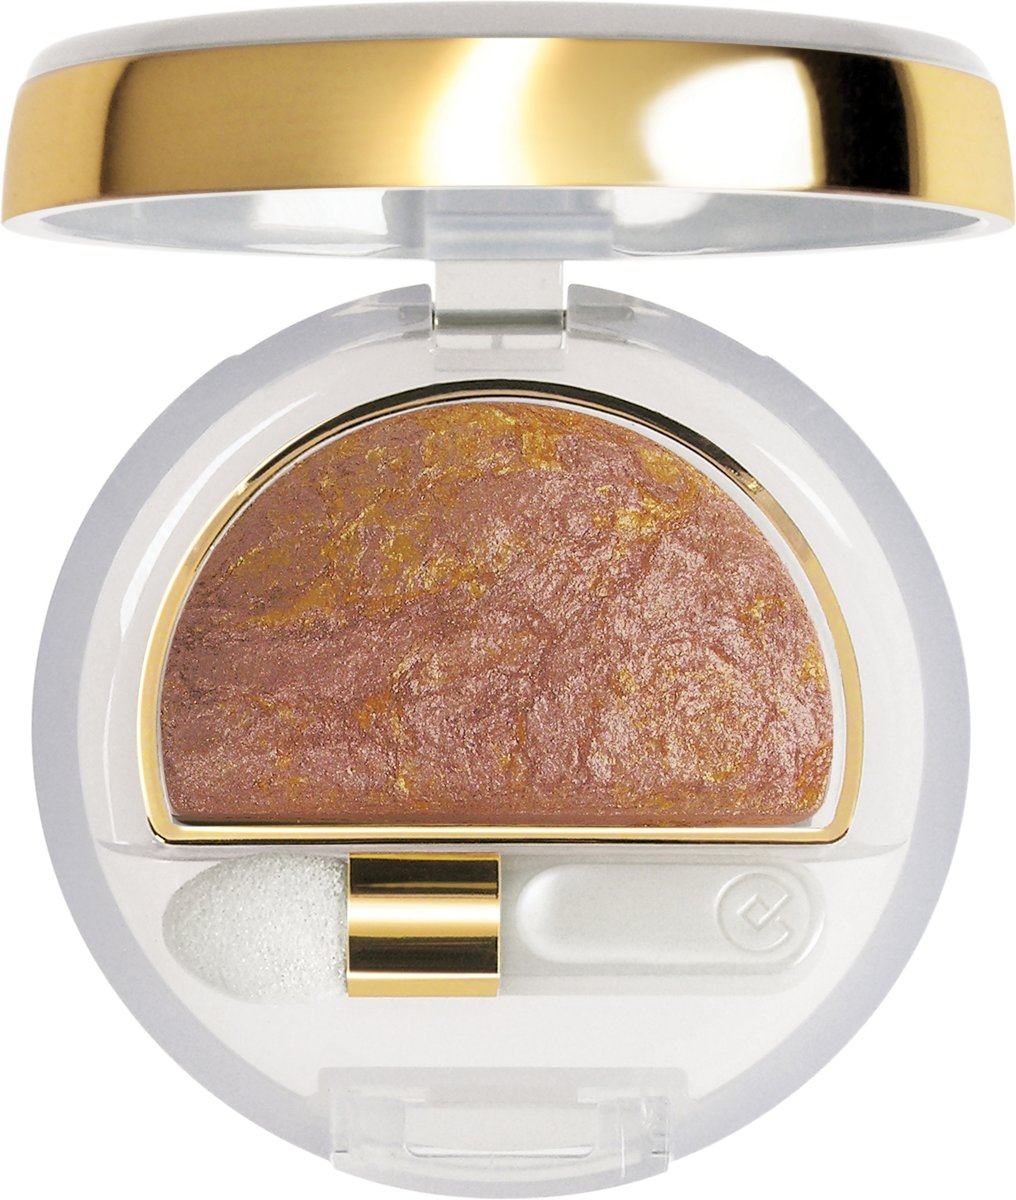 Collistar Double Effect Wet & Dry Eyeshadow - 4 Rosy Beige - Oogschaduw